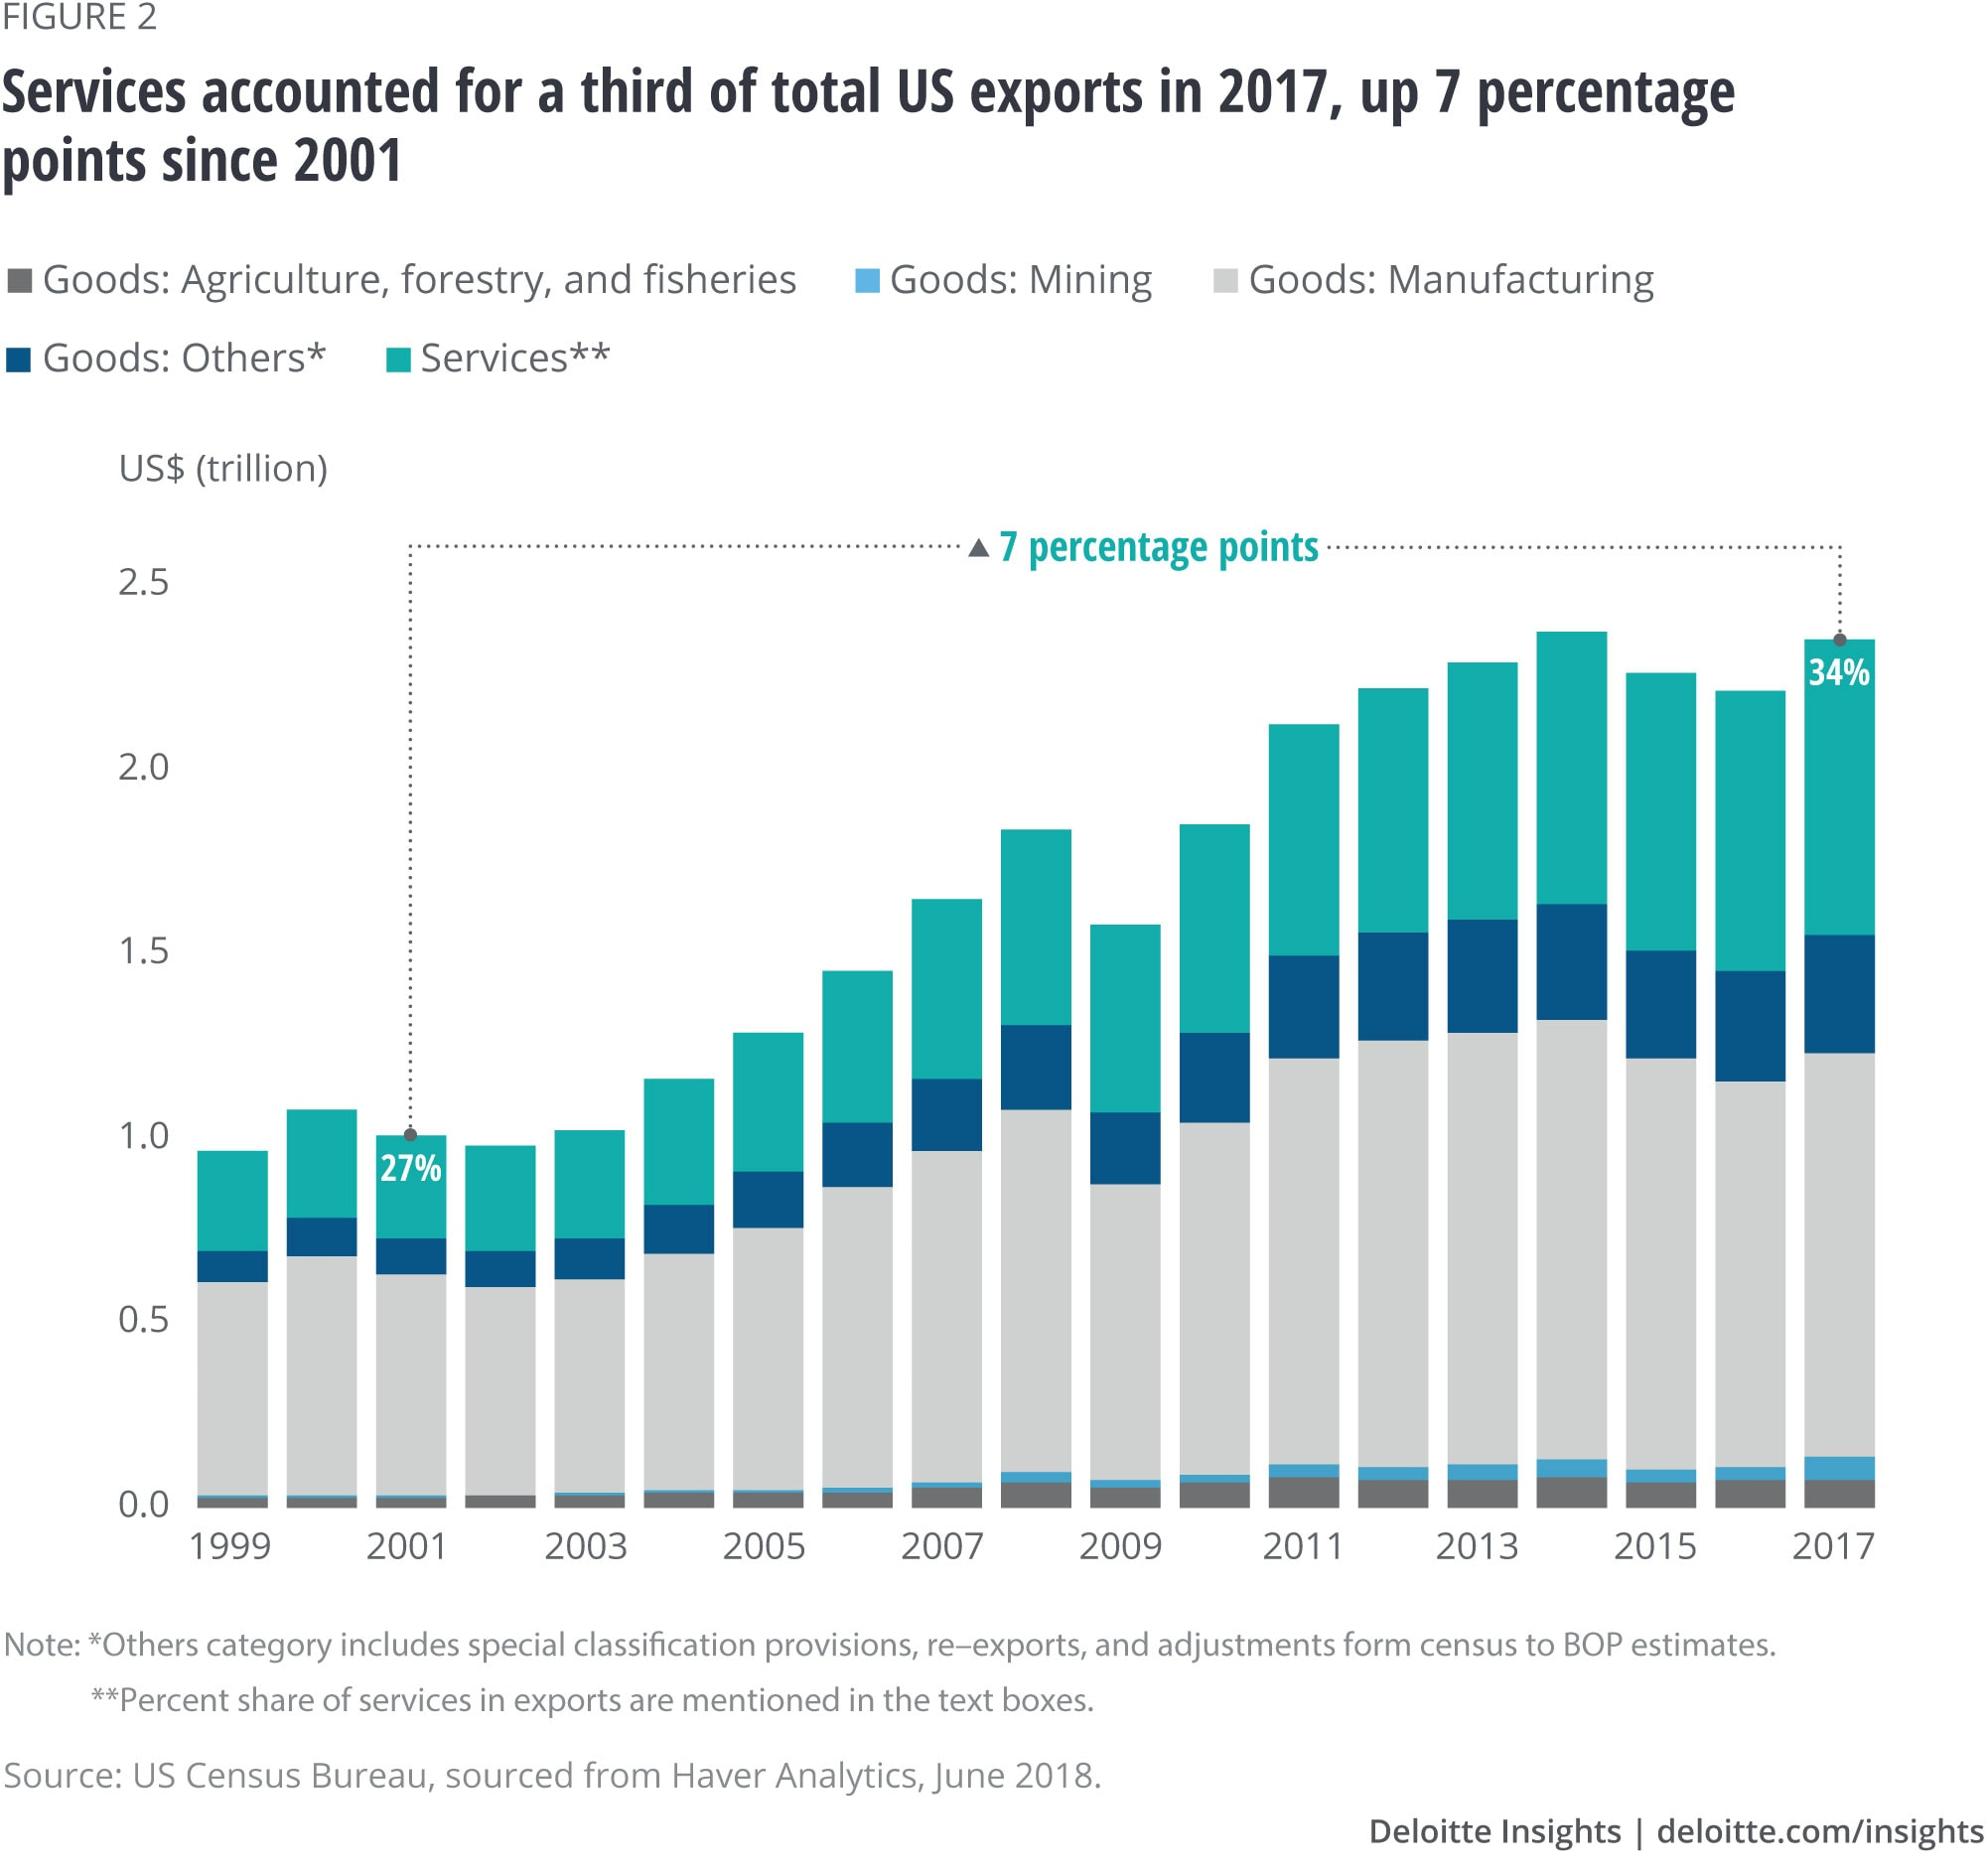 Services accounted for a third of total US exports in 2017, up 7 percentage points since 2001